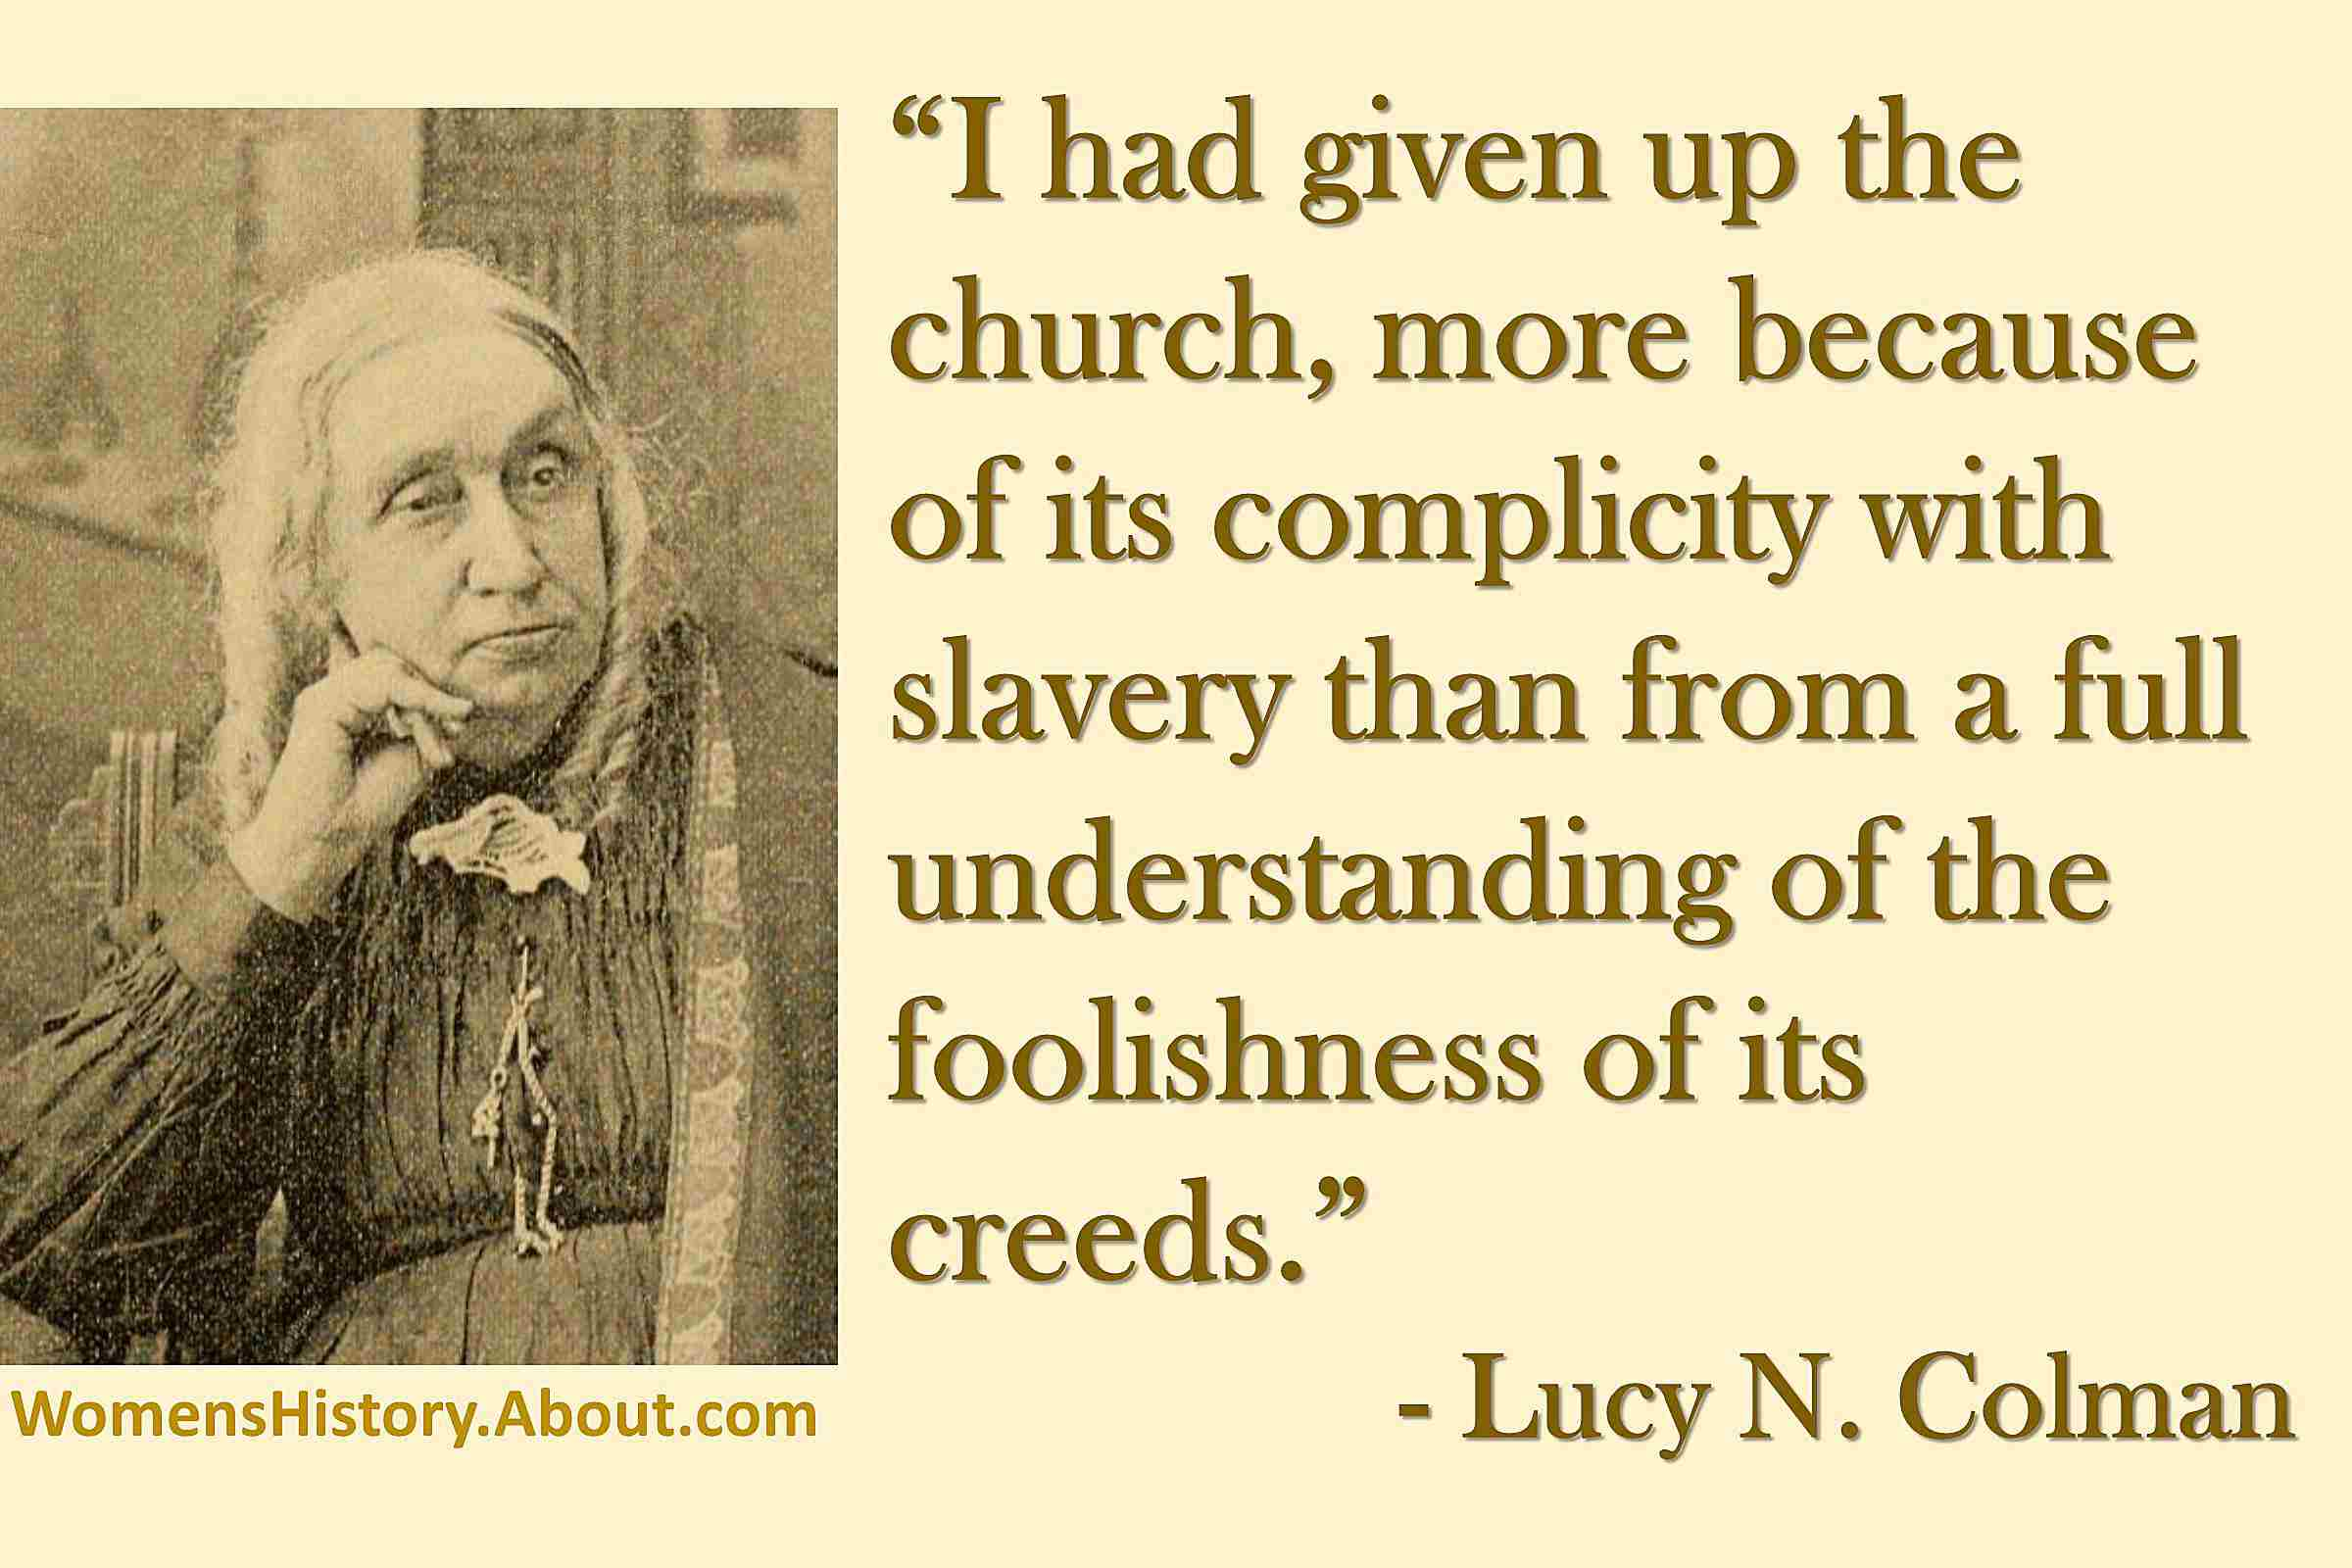 Quote from Lucy Colman